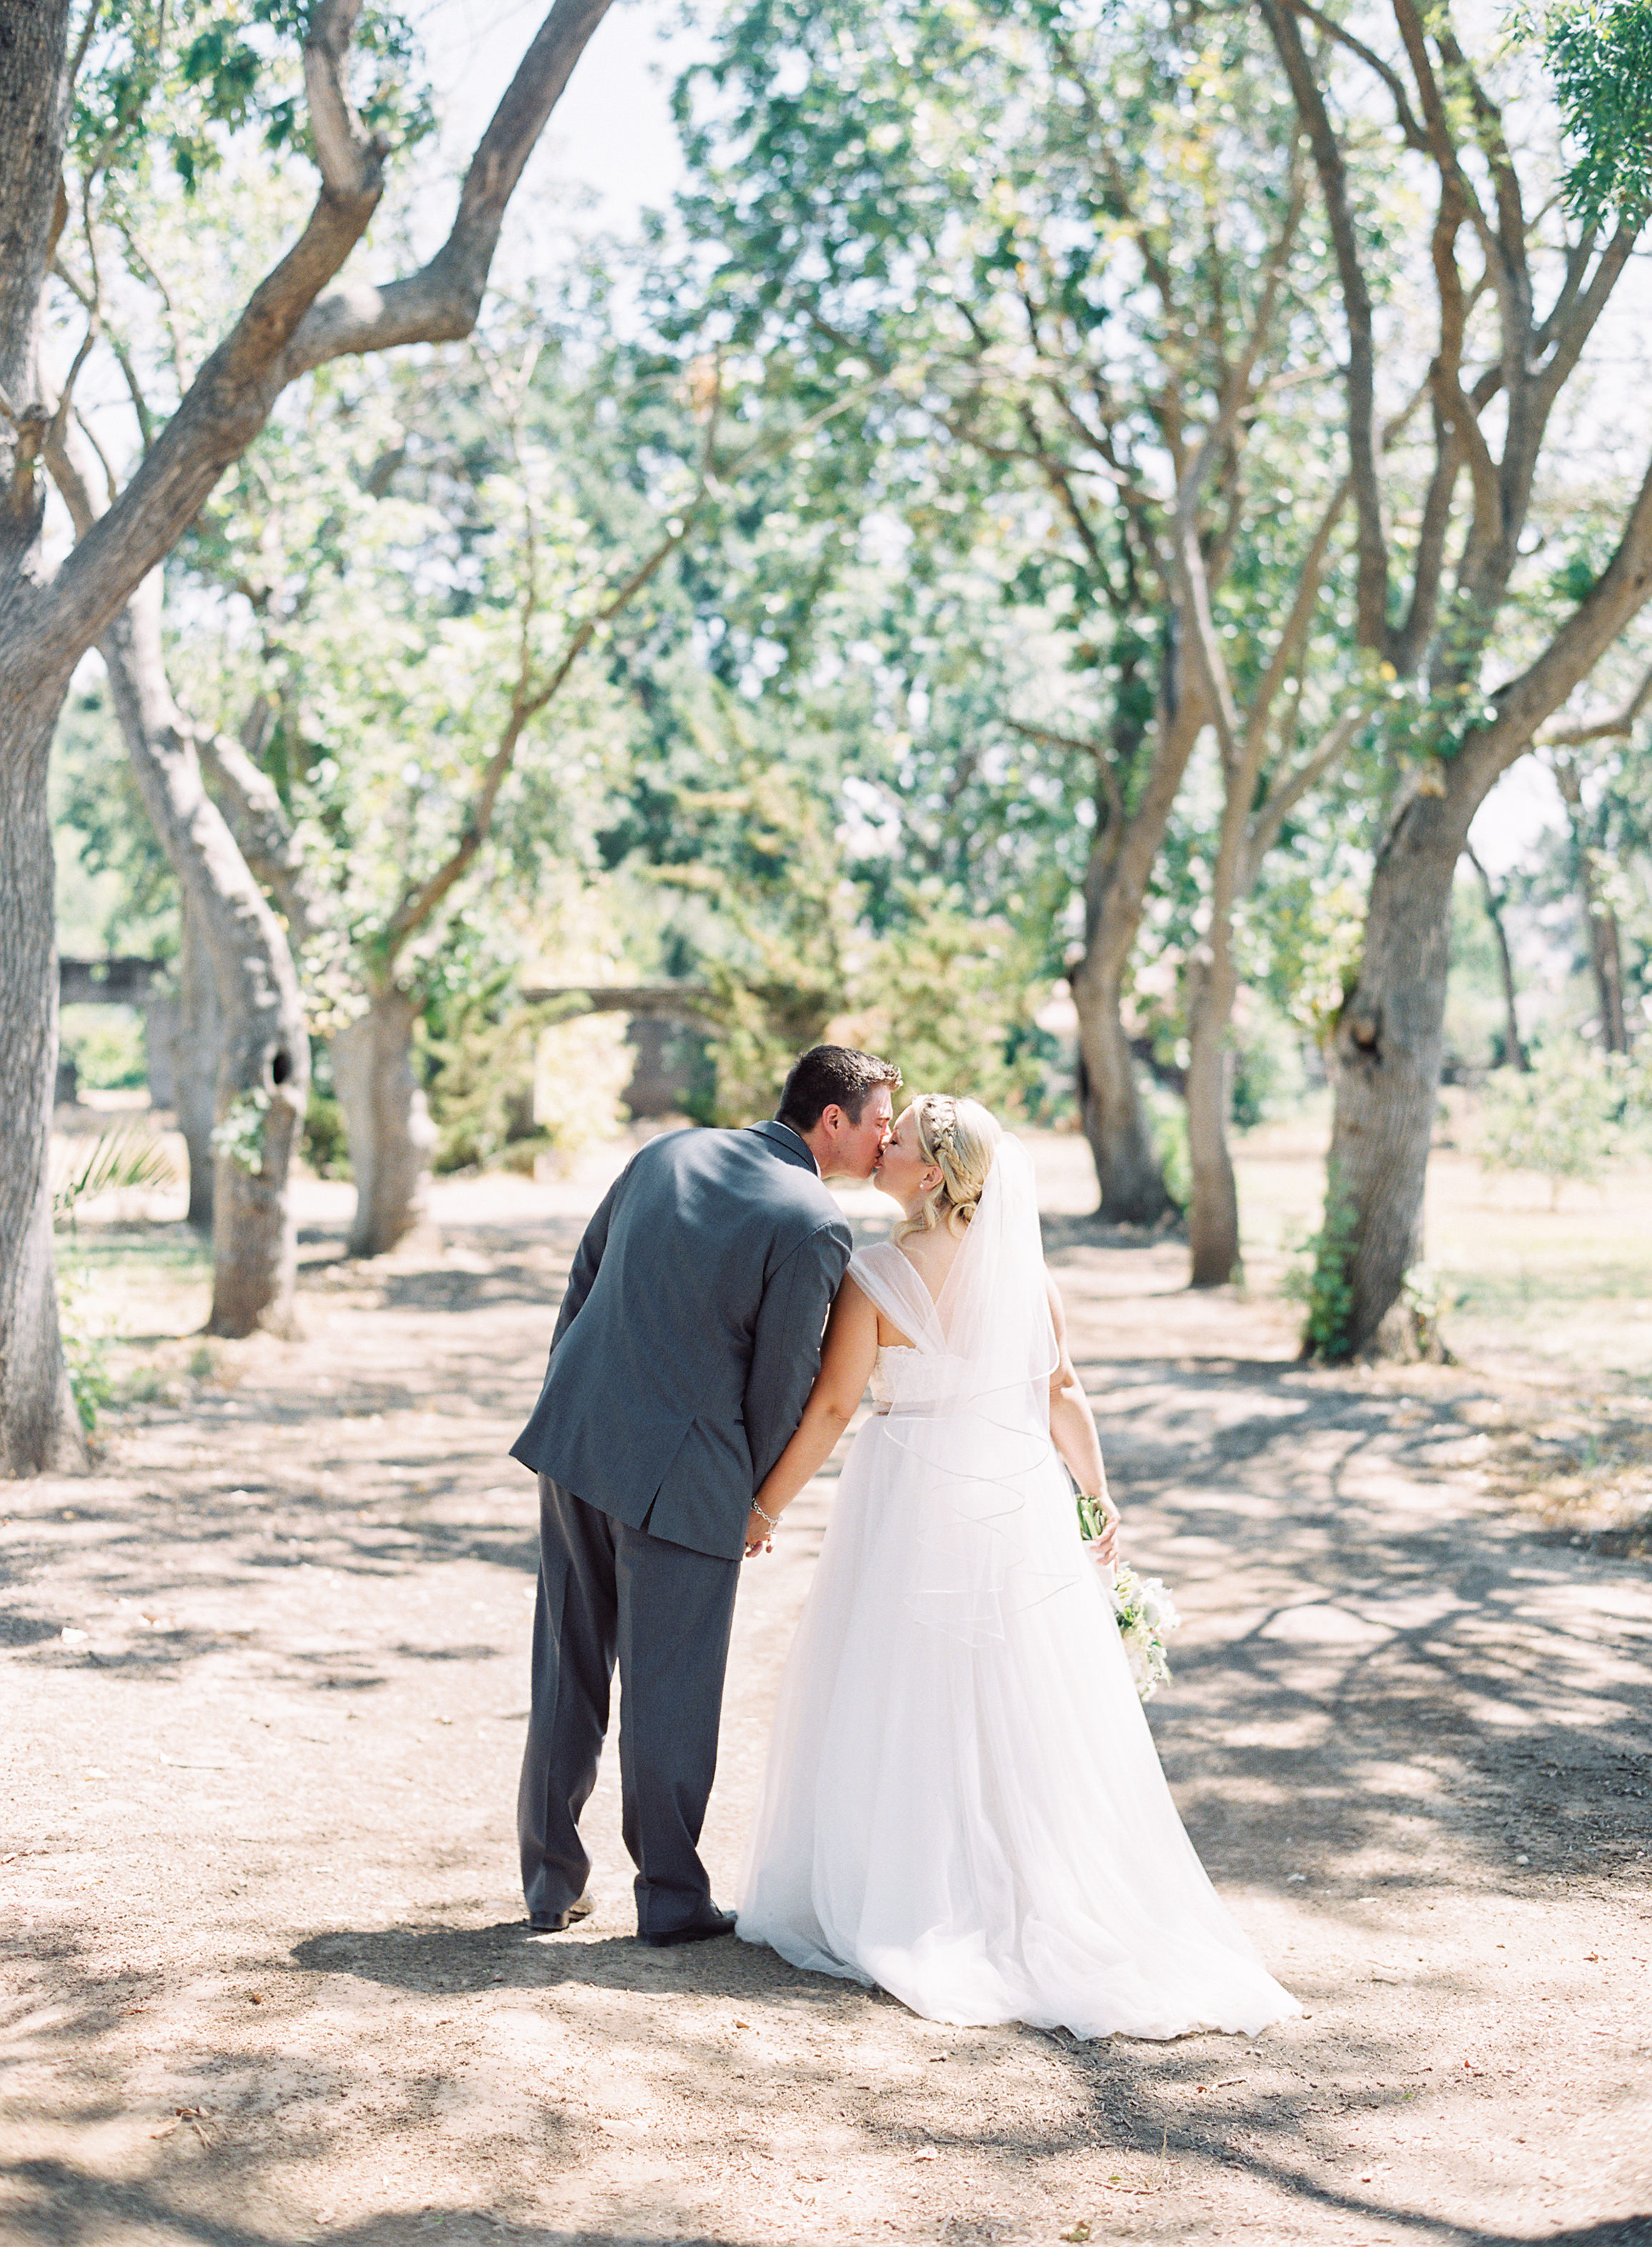 southern-inspired-wedding-at-ravenswood-historic-site-016.jpg